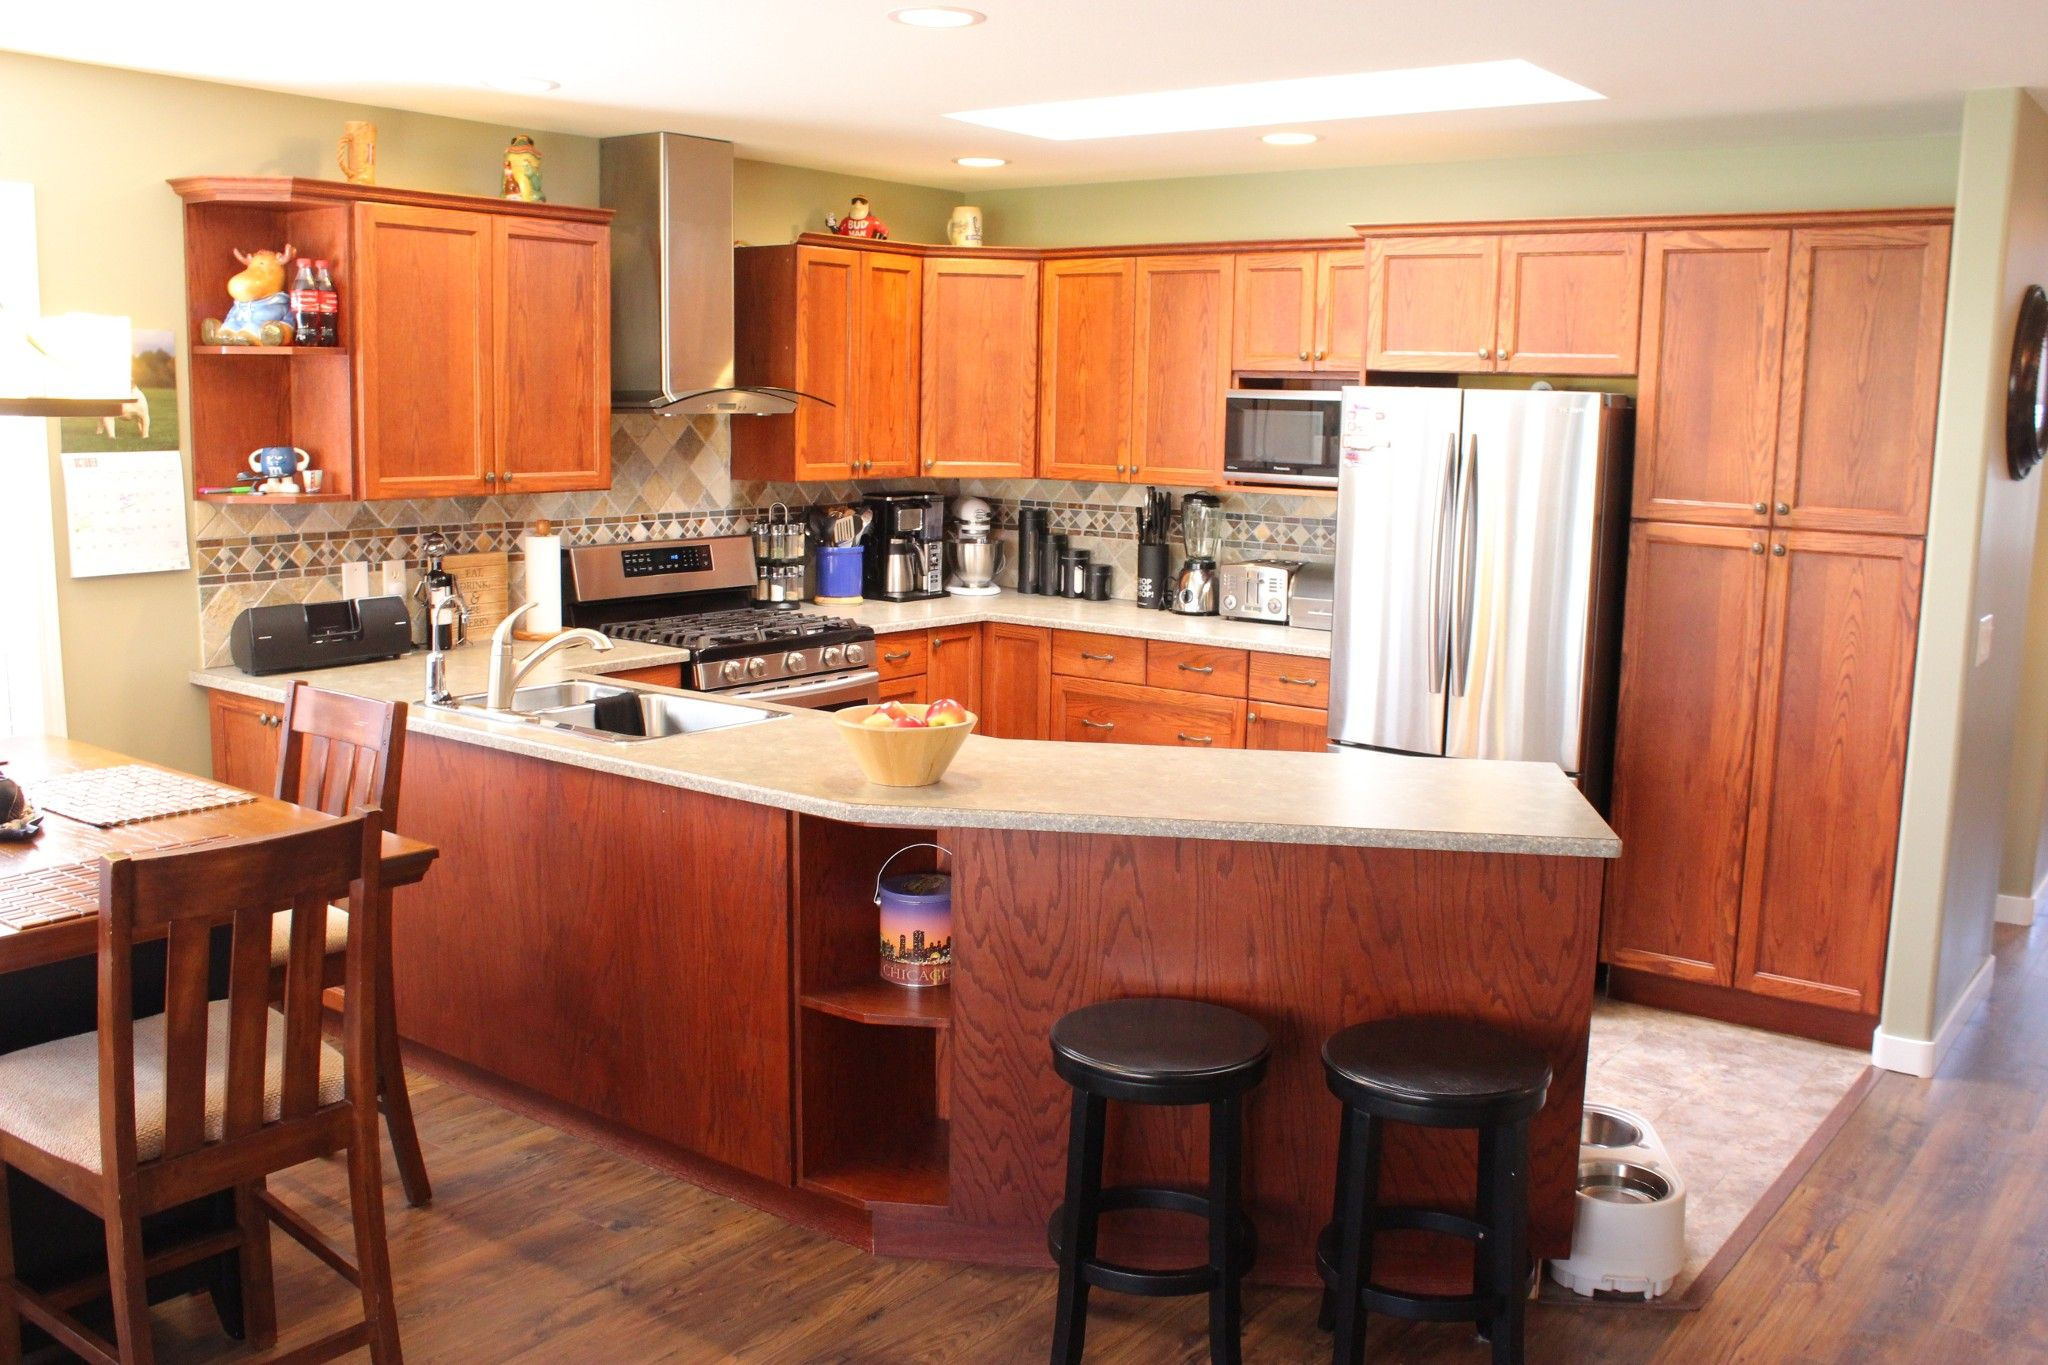 Photo 7: Photos: 3696 Navatanee Drive in Kamloops: South Thompson Valley House for sale : MLS®# 148660